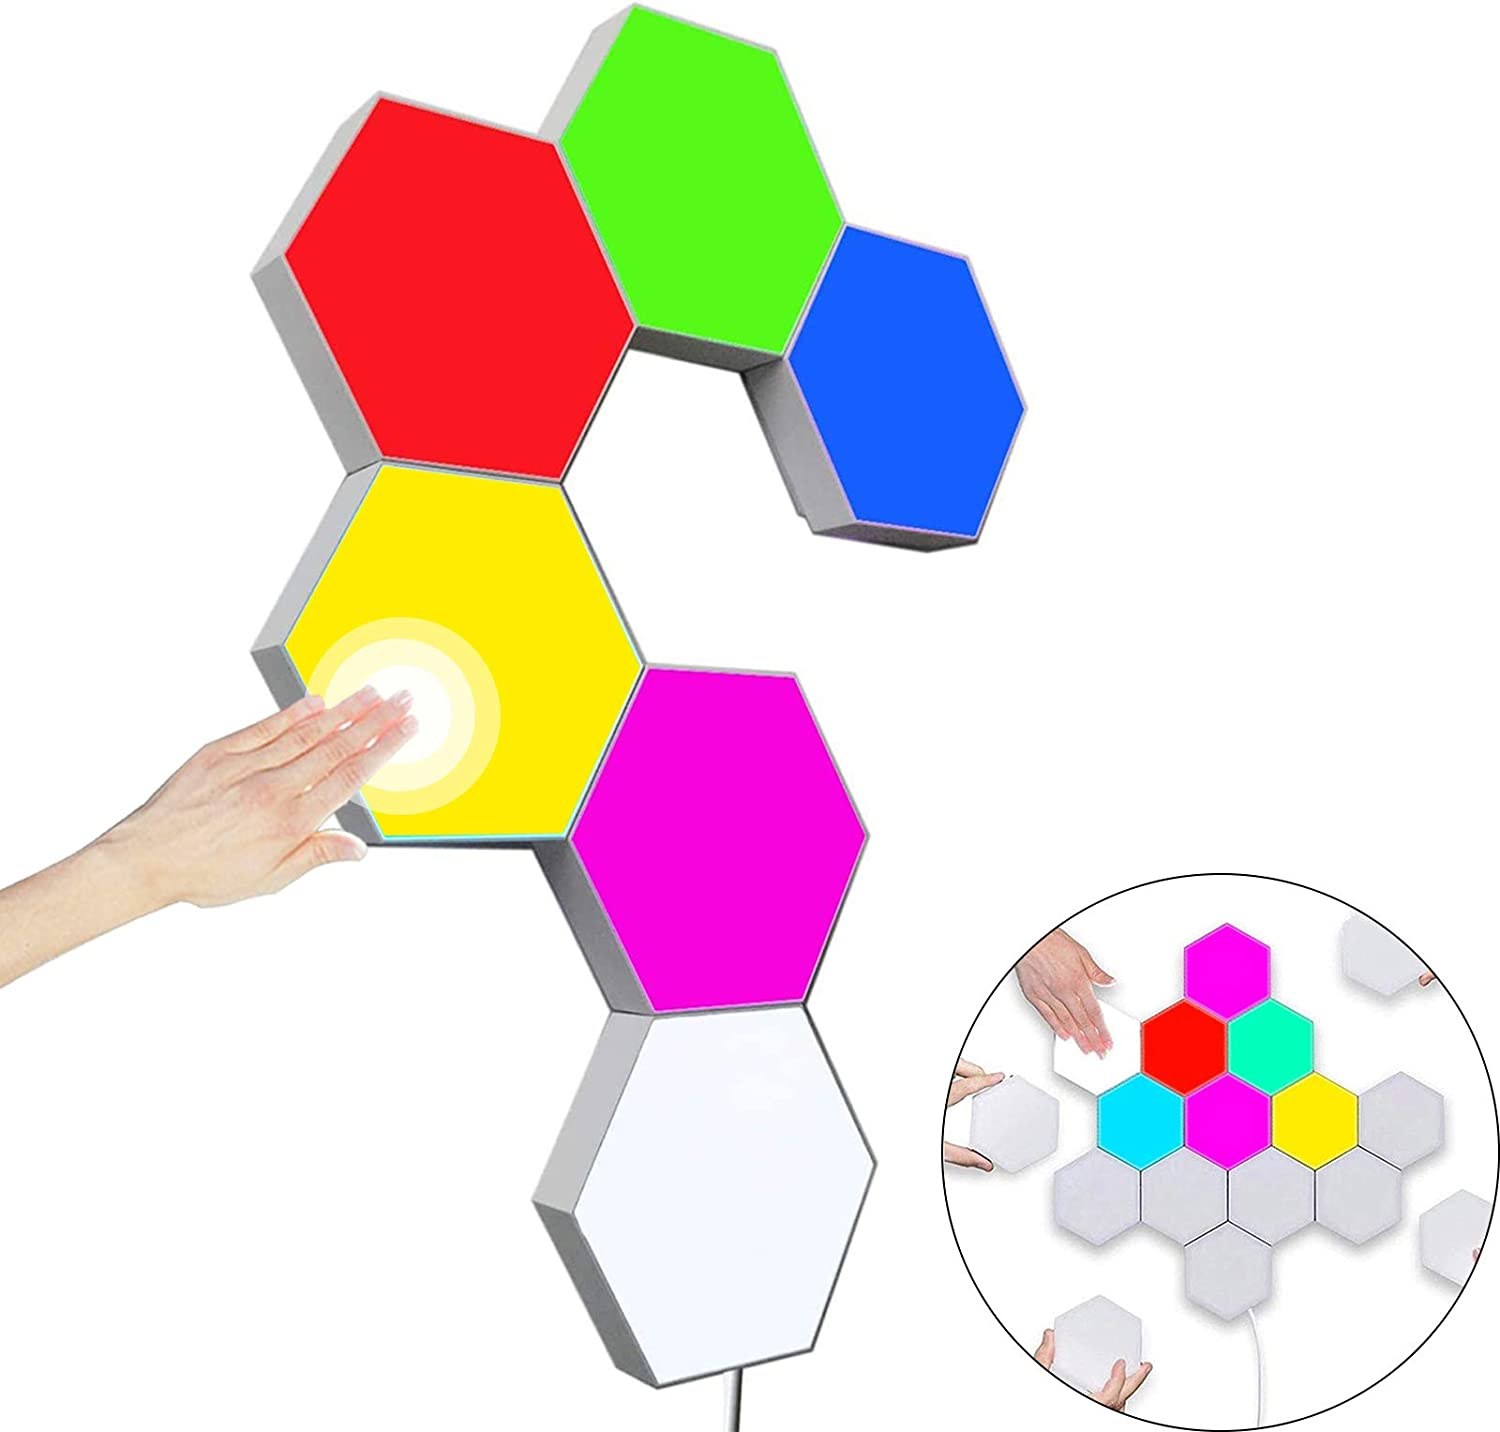 Hexagon Wall Light Multicolor,Smart Modular Touch-Sensitive LED Light Wall Panels RGB Night Light DIY Geometry Splicing Hex Light for Bedroom Living Room Hallway Party Decor,6 Pack